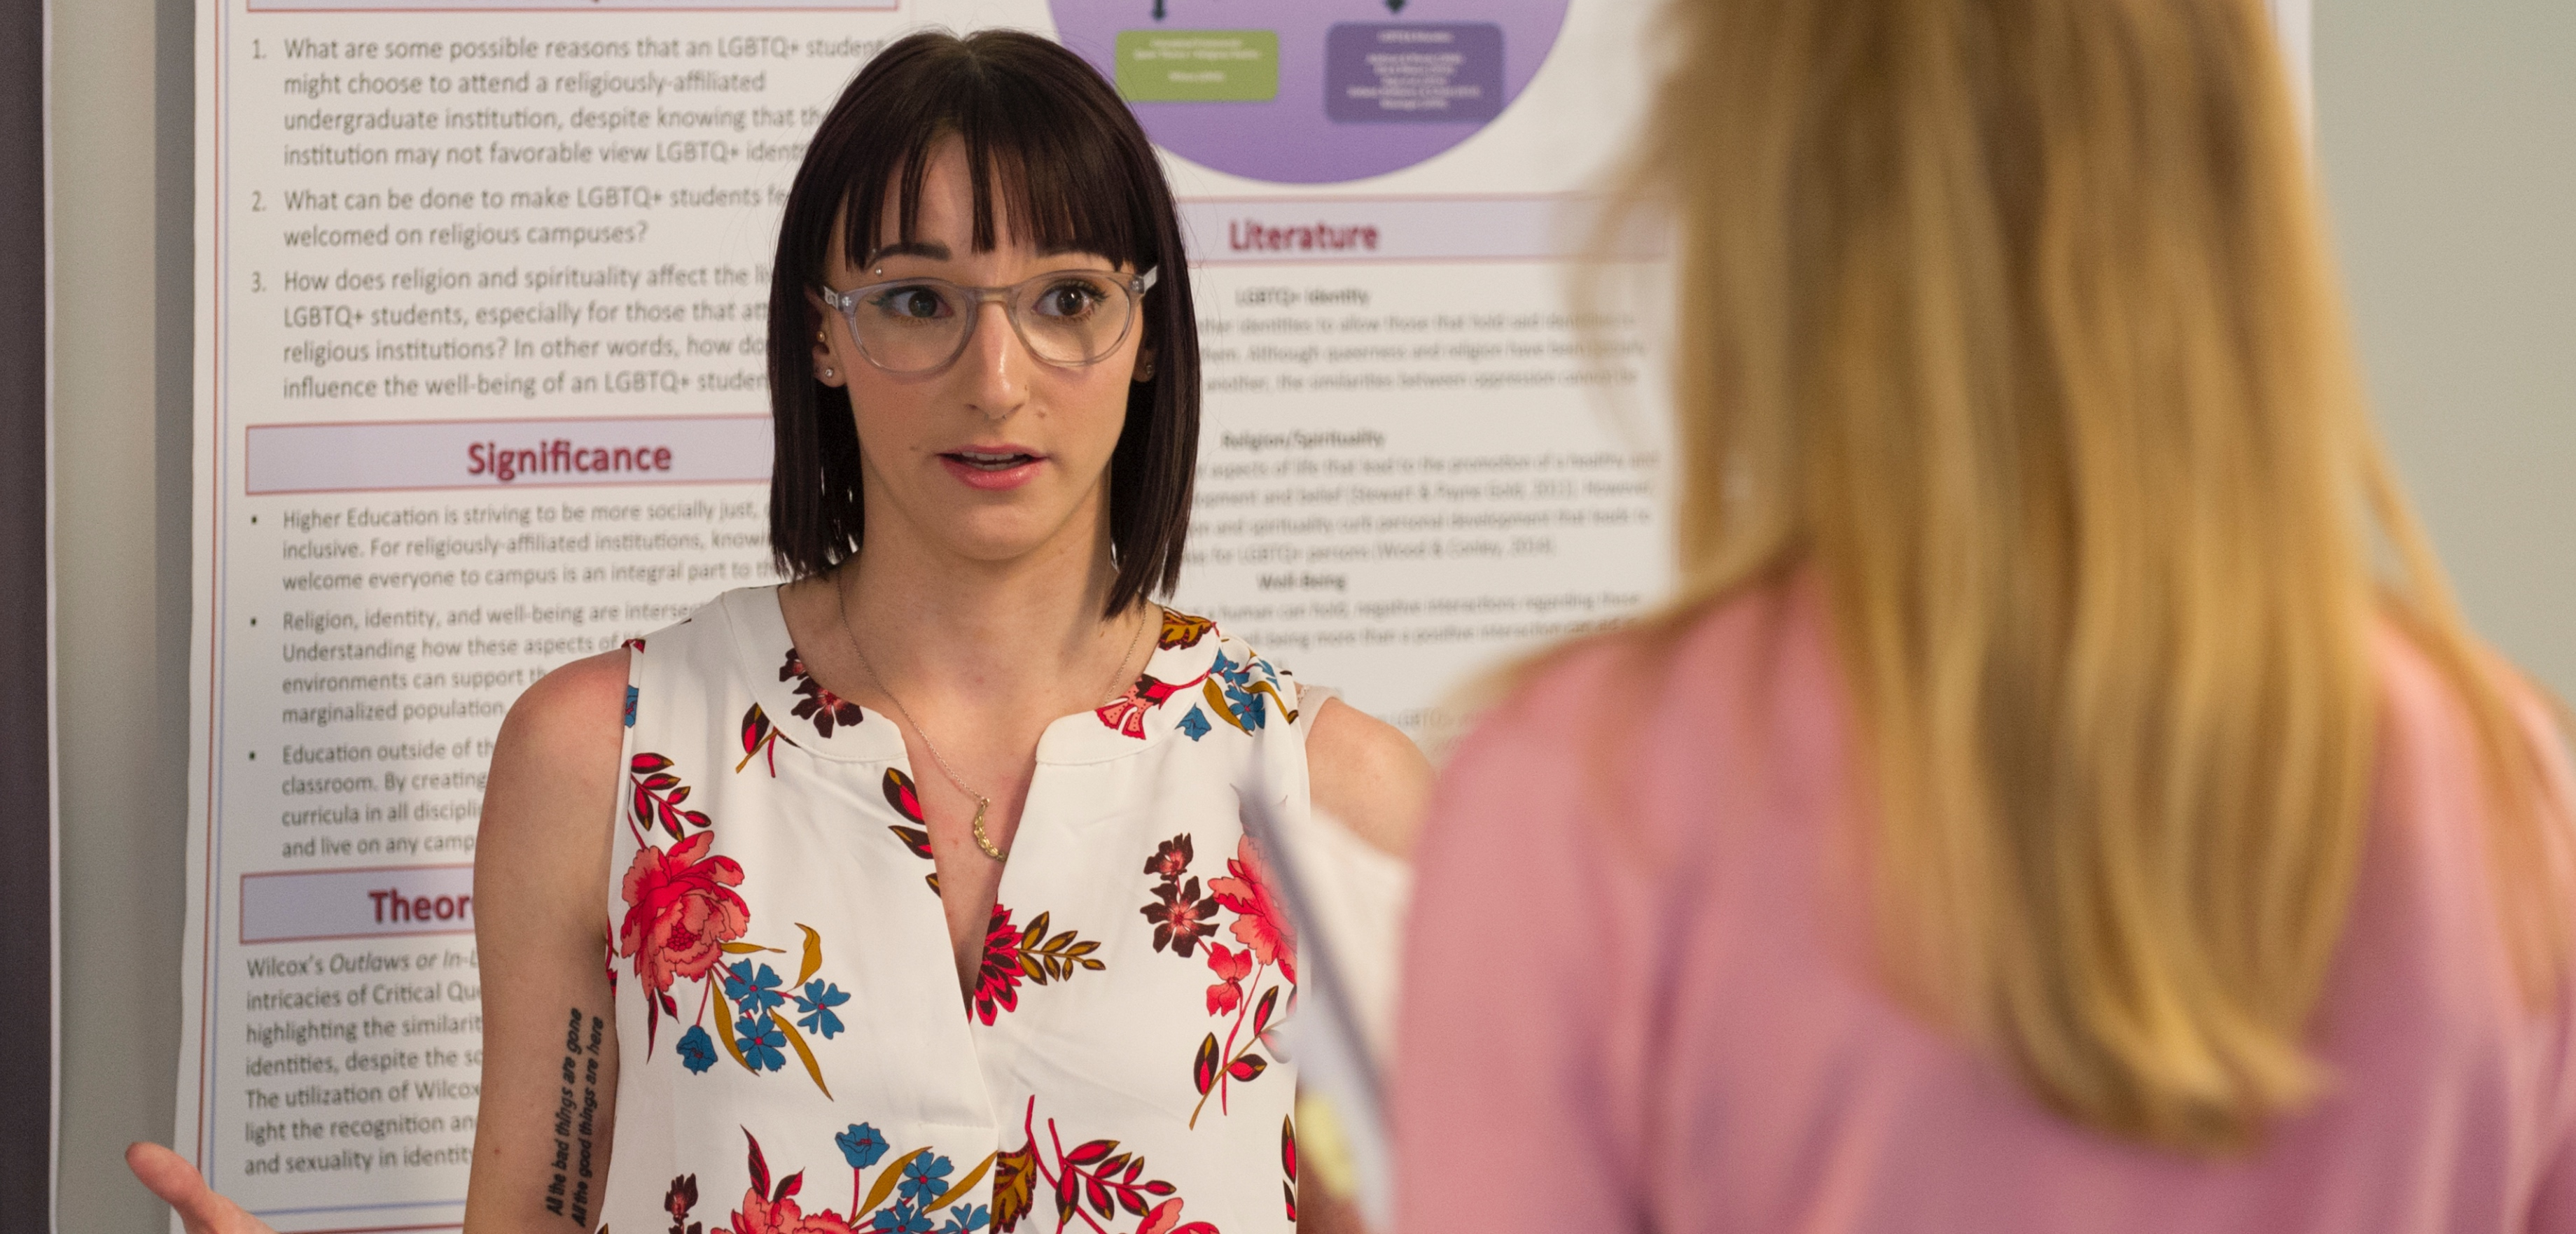 student presenting research at poster event